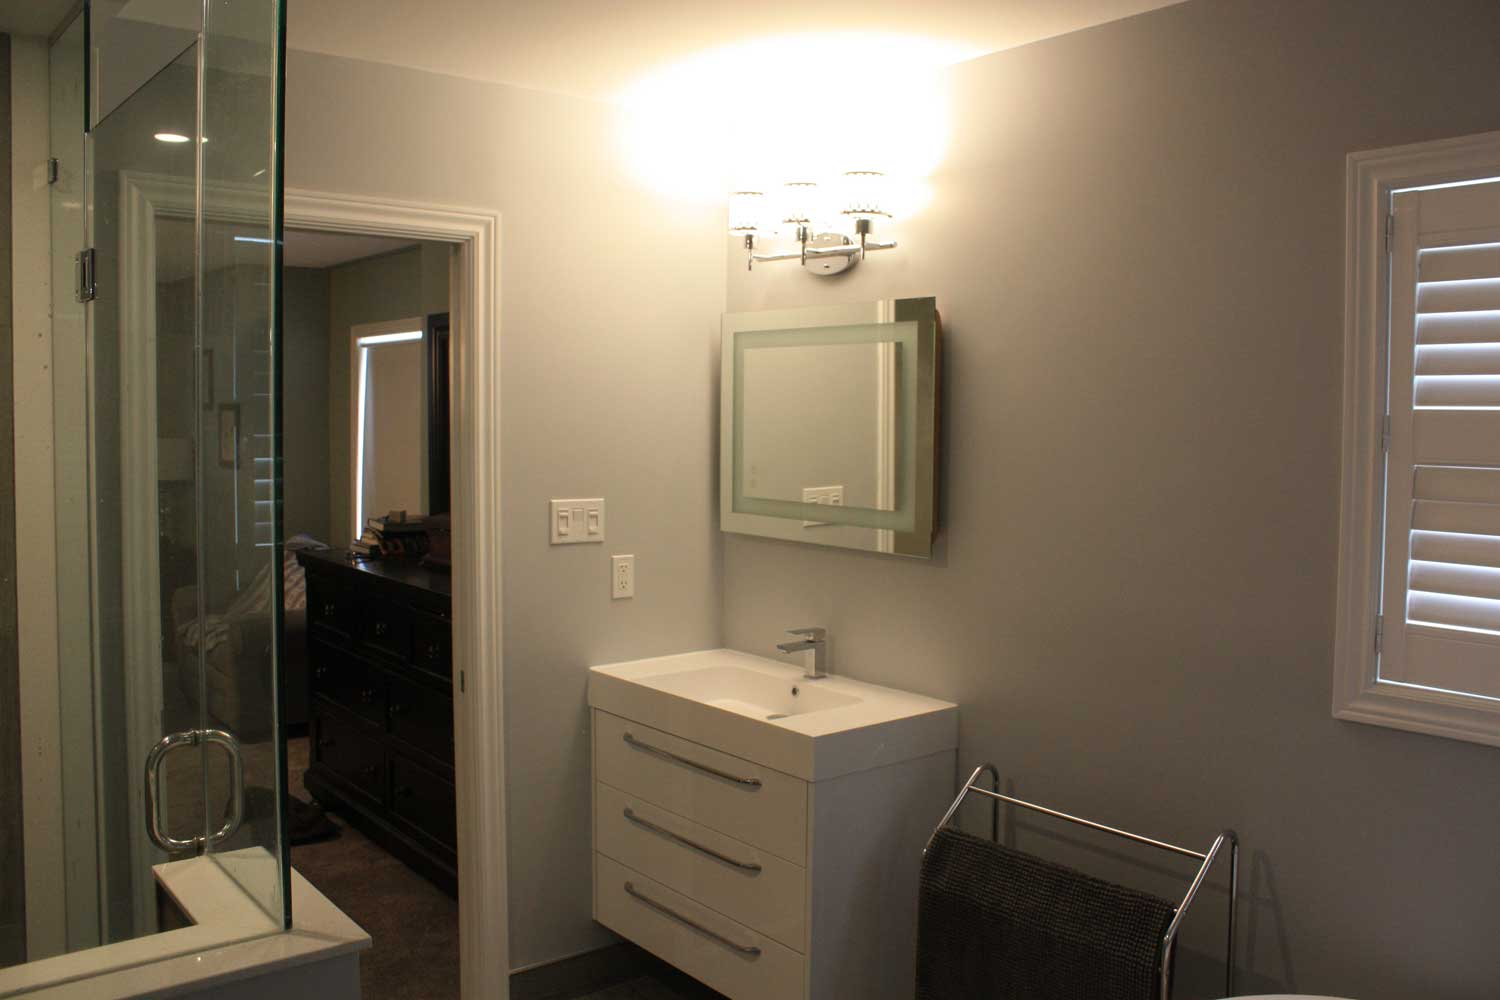 ccr-durham-bathroom-renovations-custom-built-g1